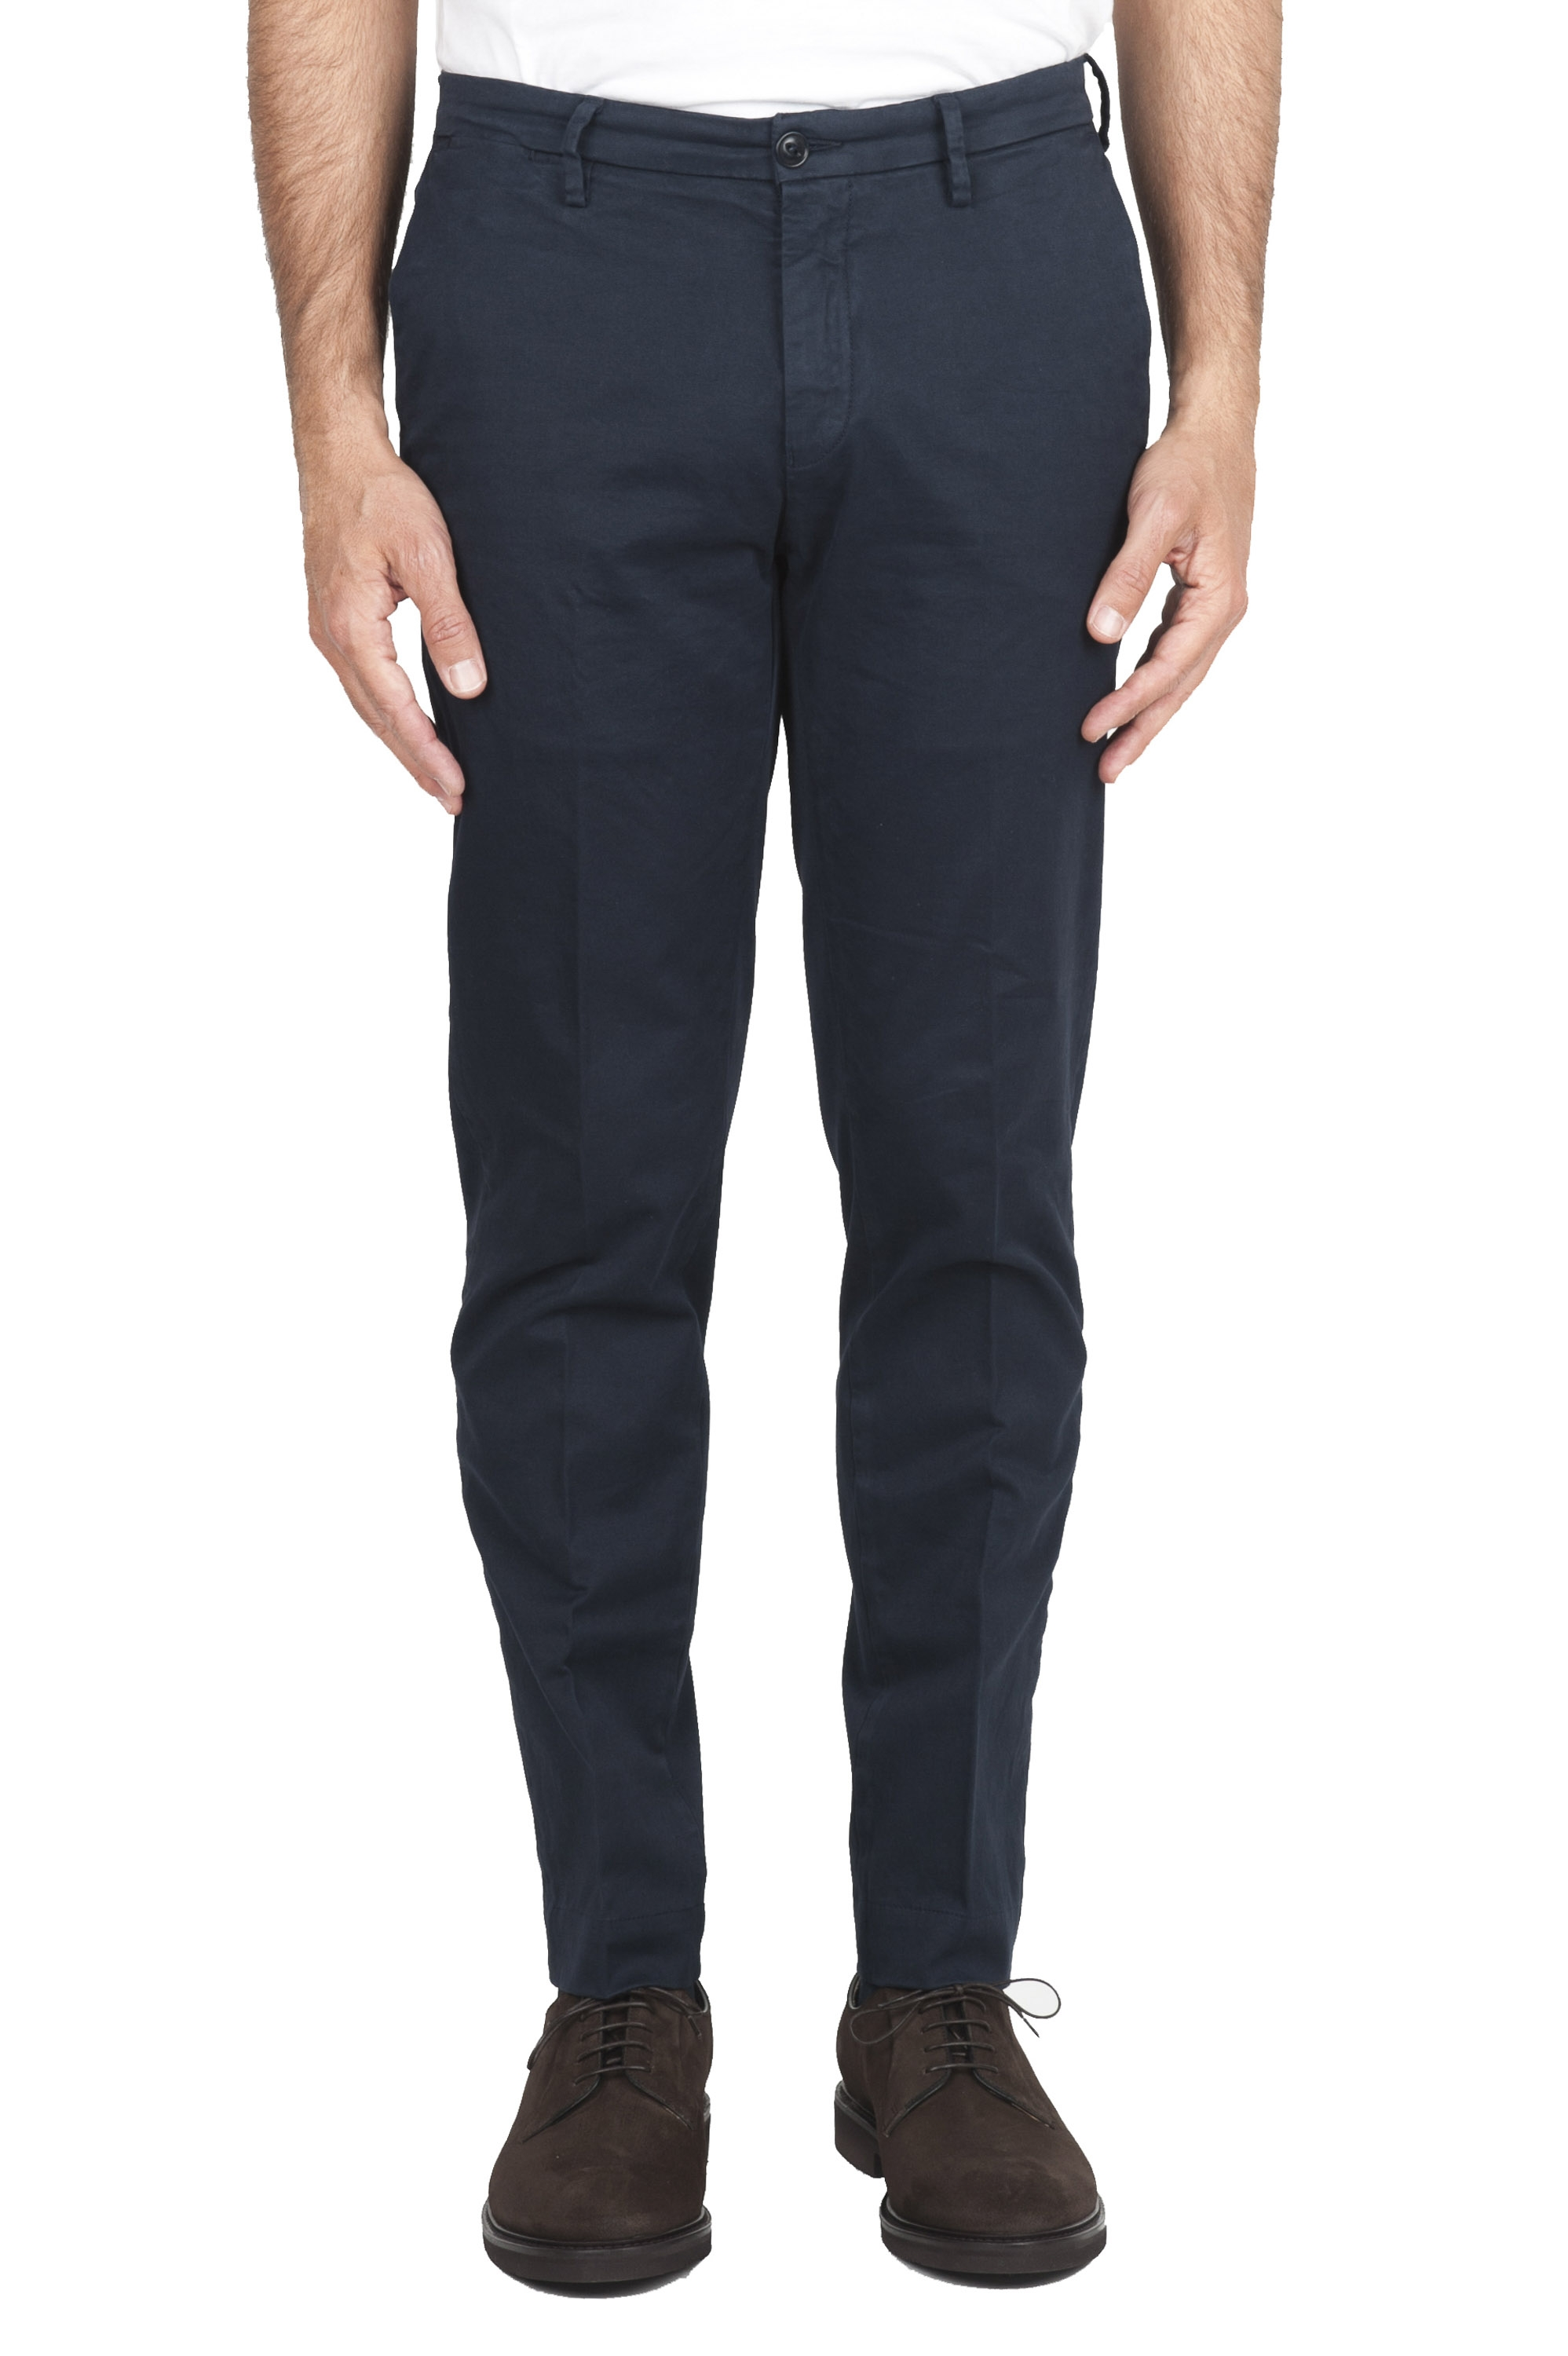 SBU 01533 Classic chino pants in blue stretch cotton 01